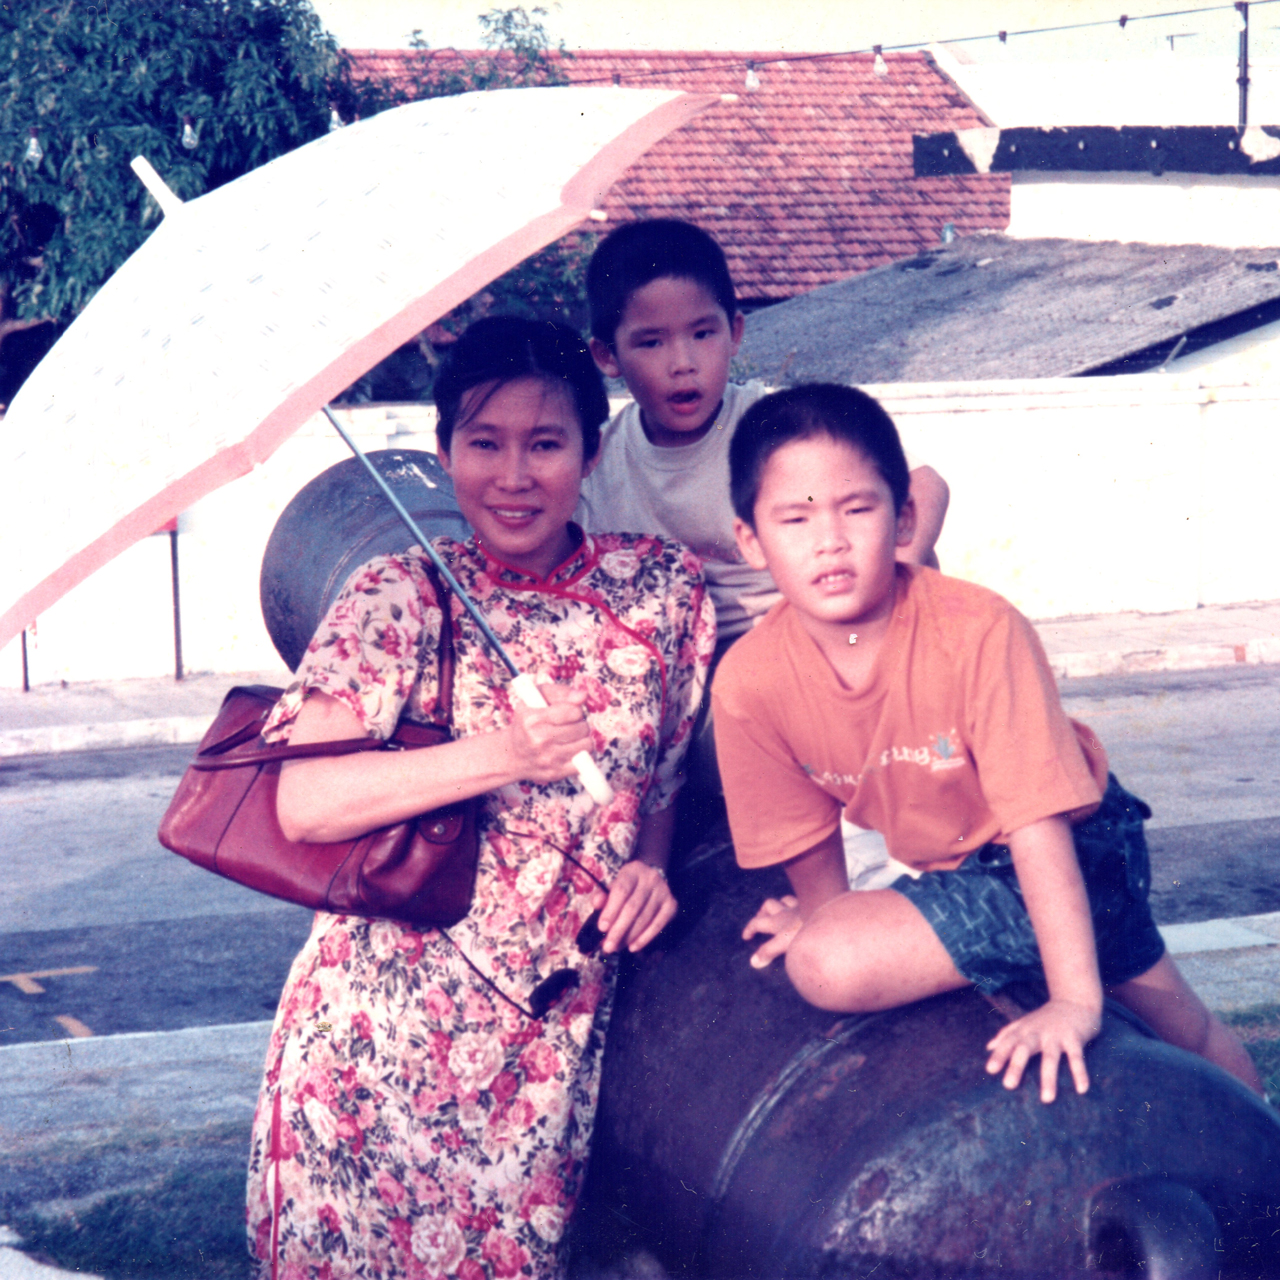 Bee Bee, Qinyang, Qinyuen at Penang's Fort Cornwallis. Chinese New Year 1991. Image size:1280x1280px